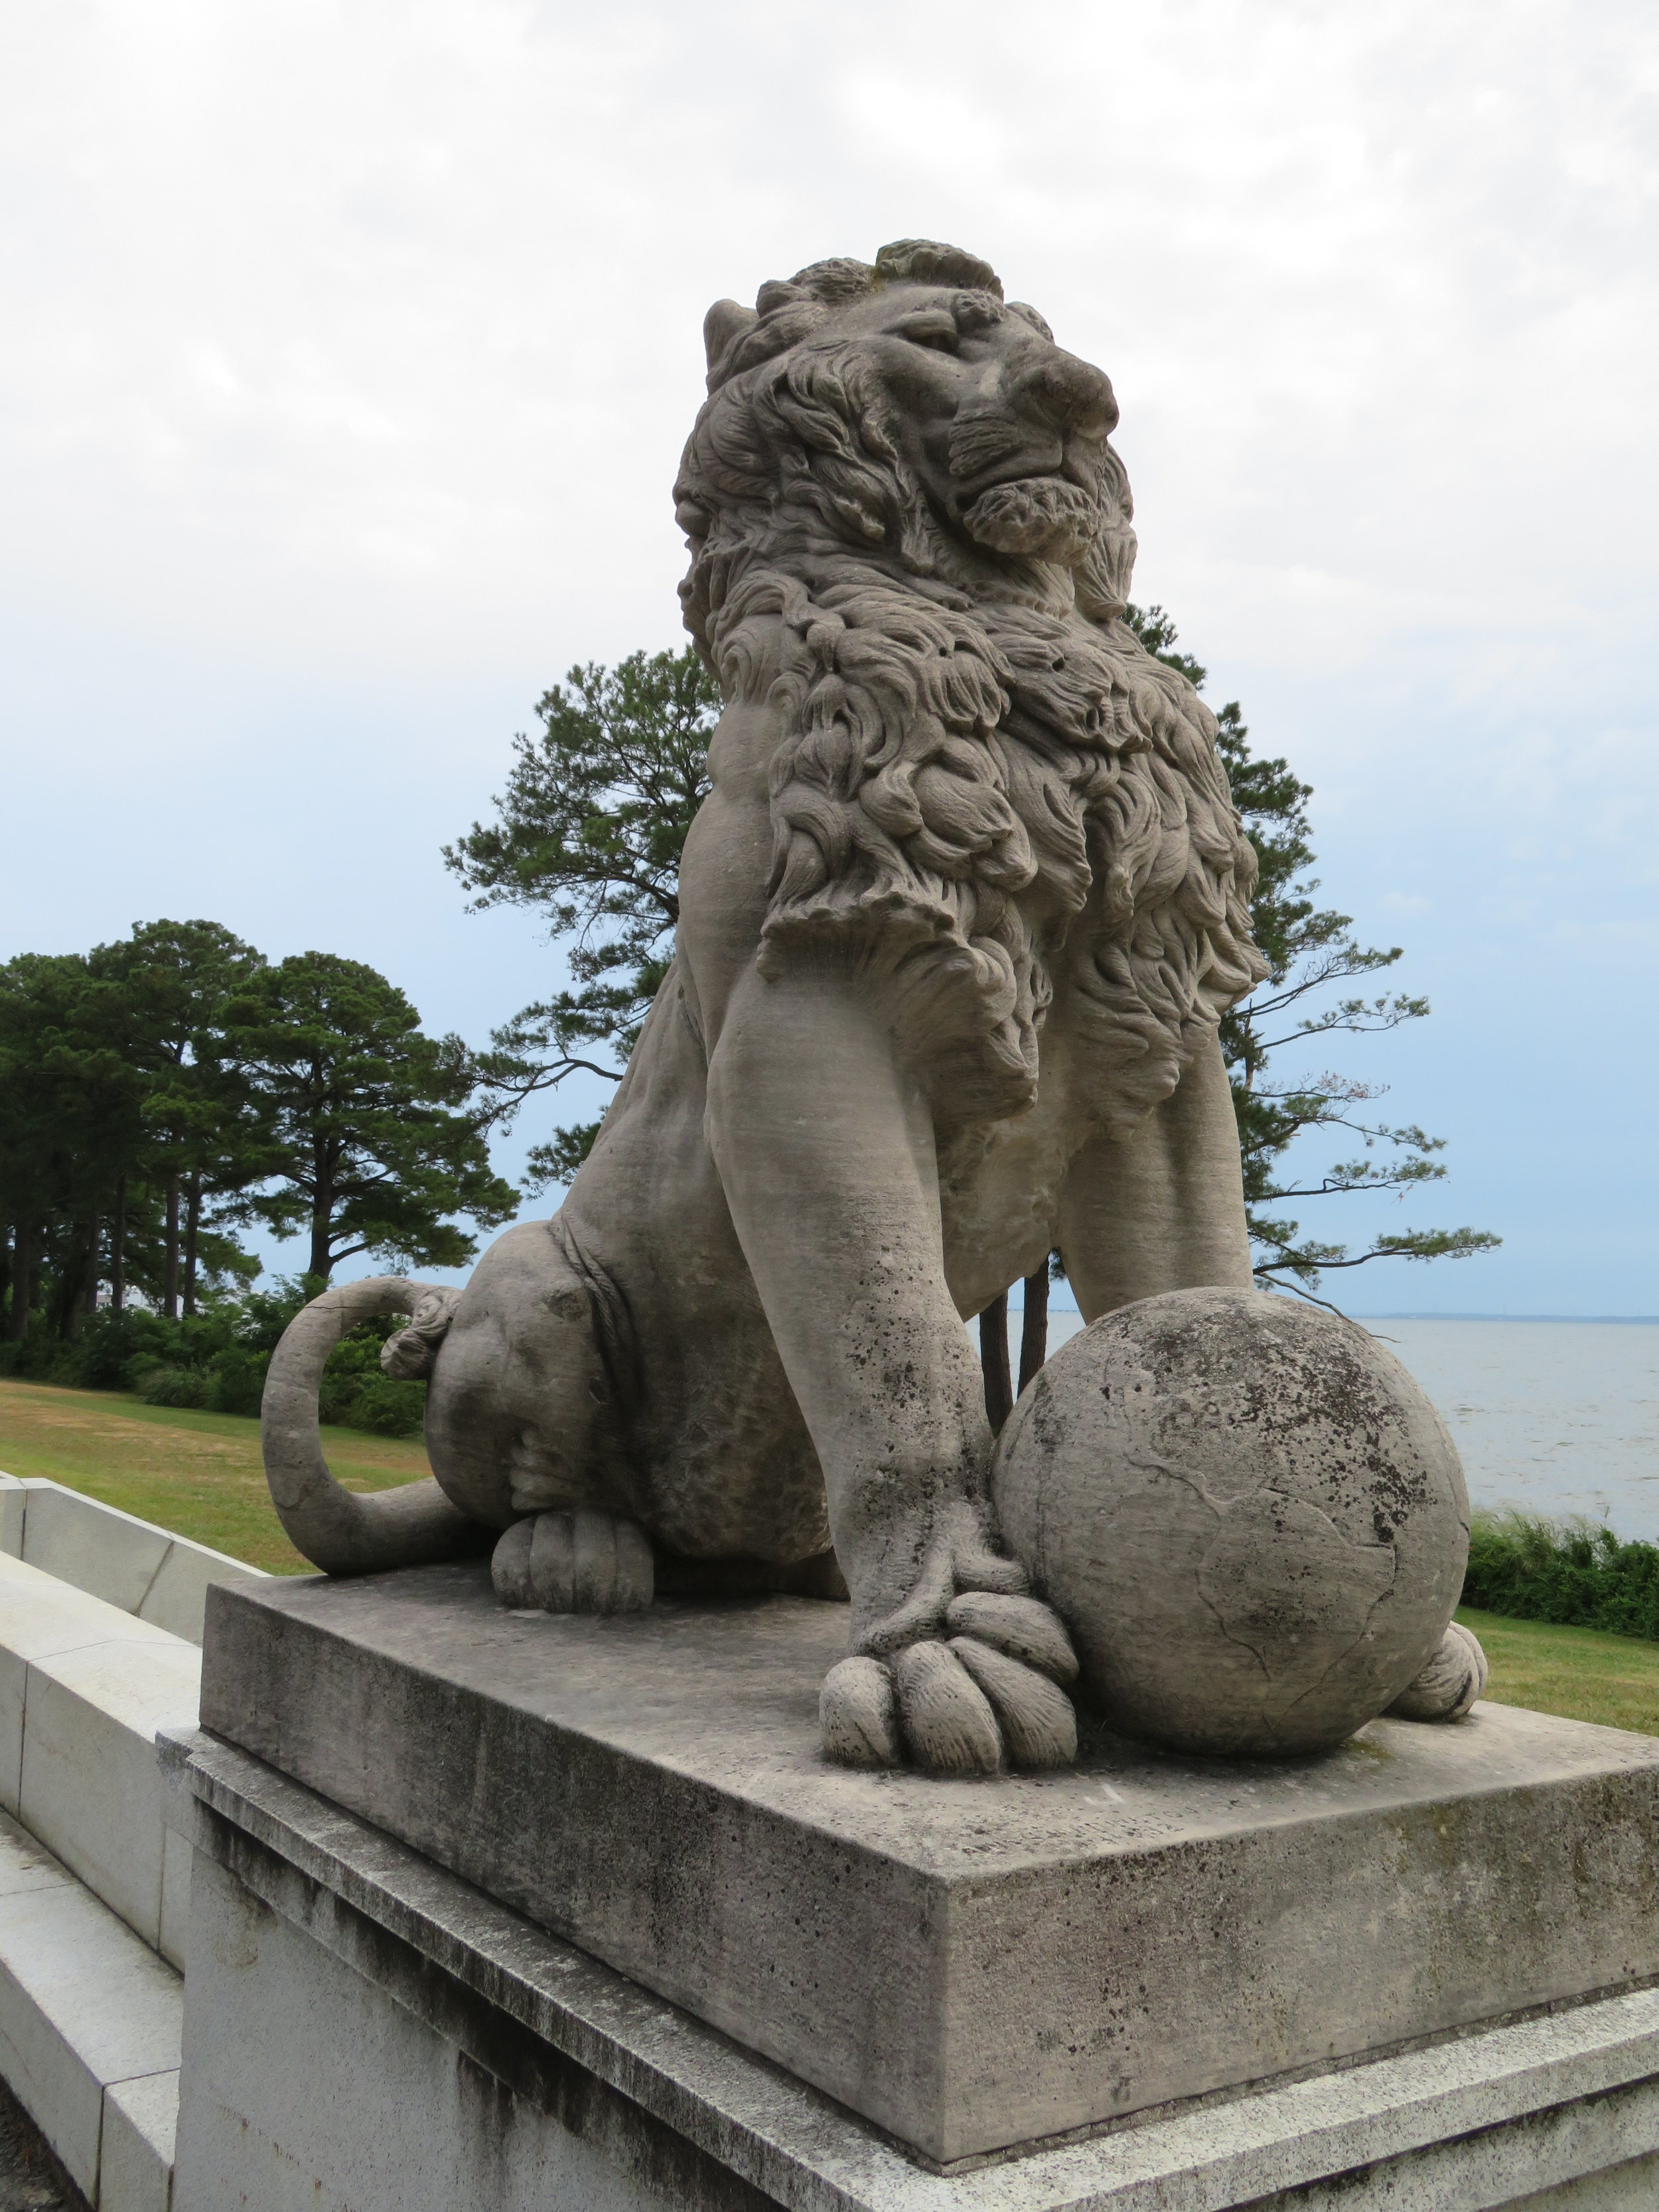 These lions are serious sentries!